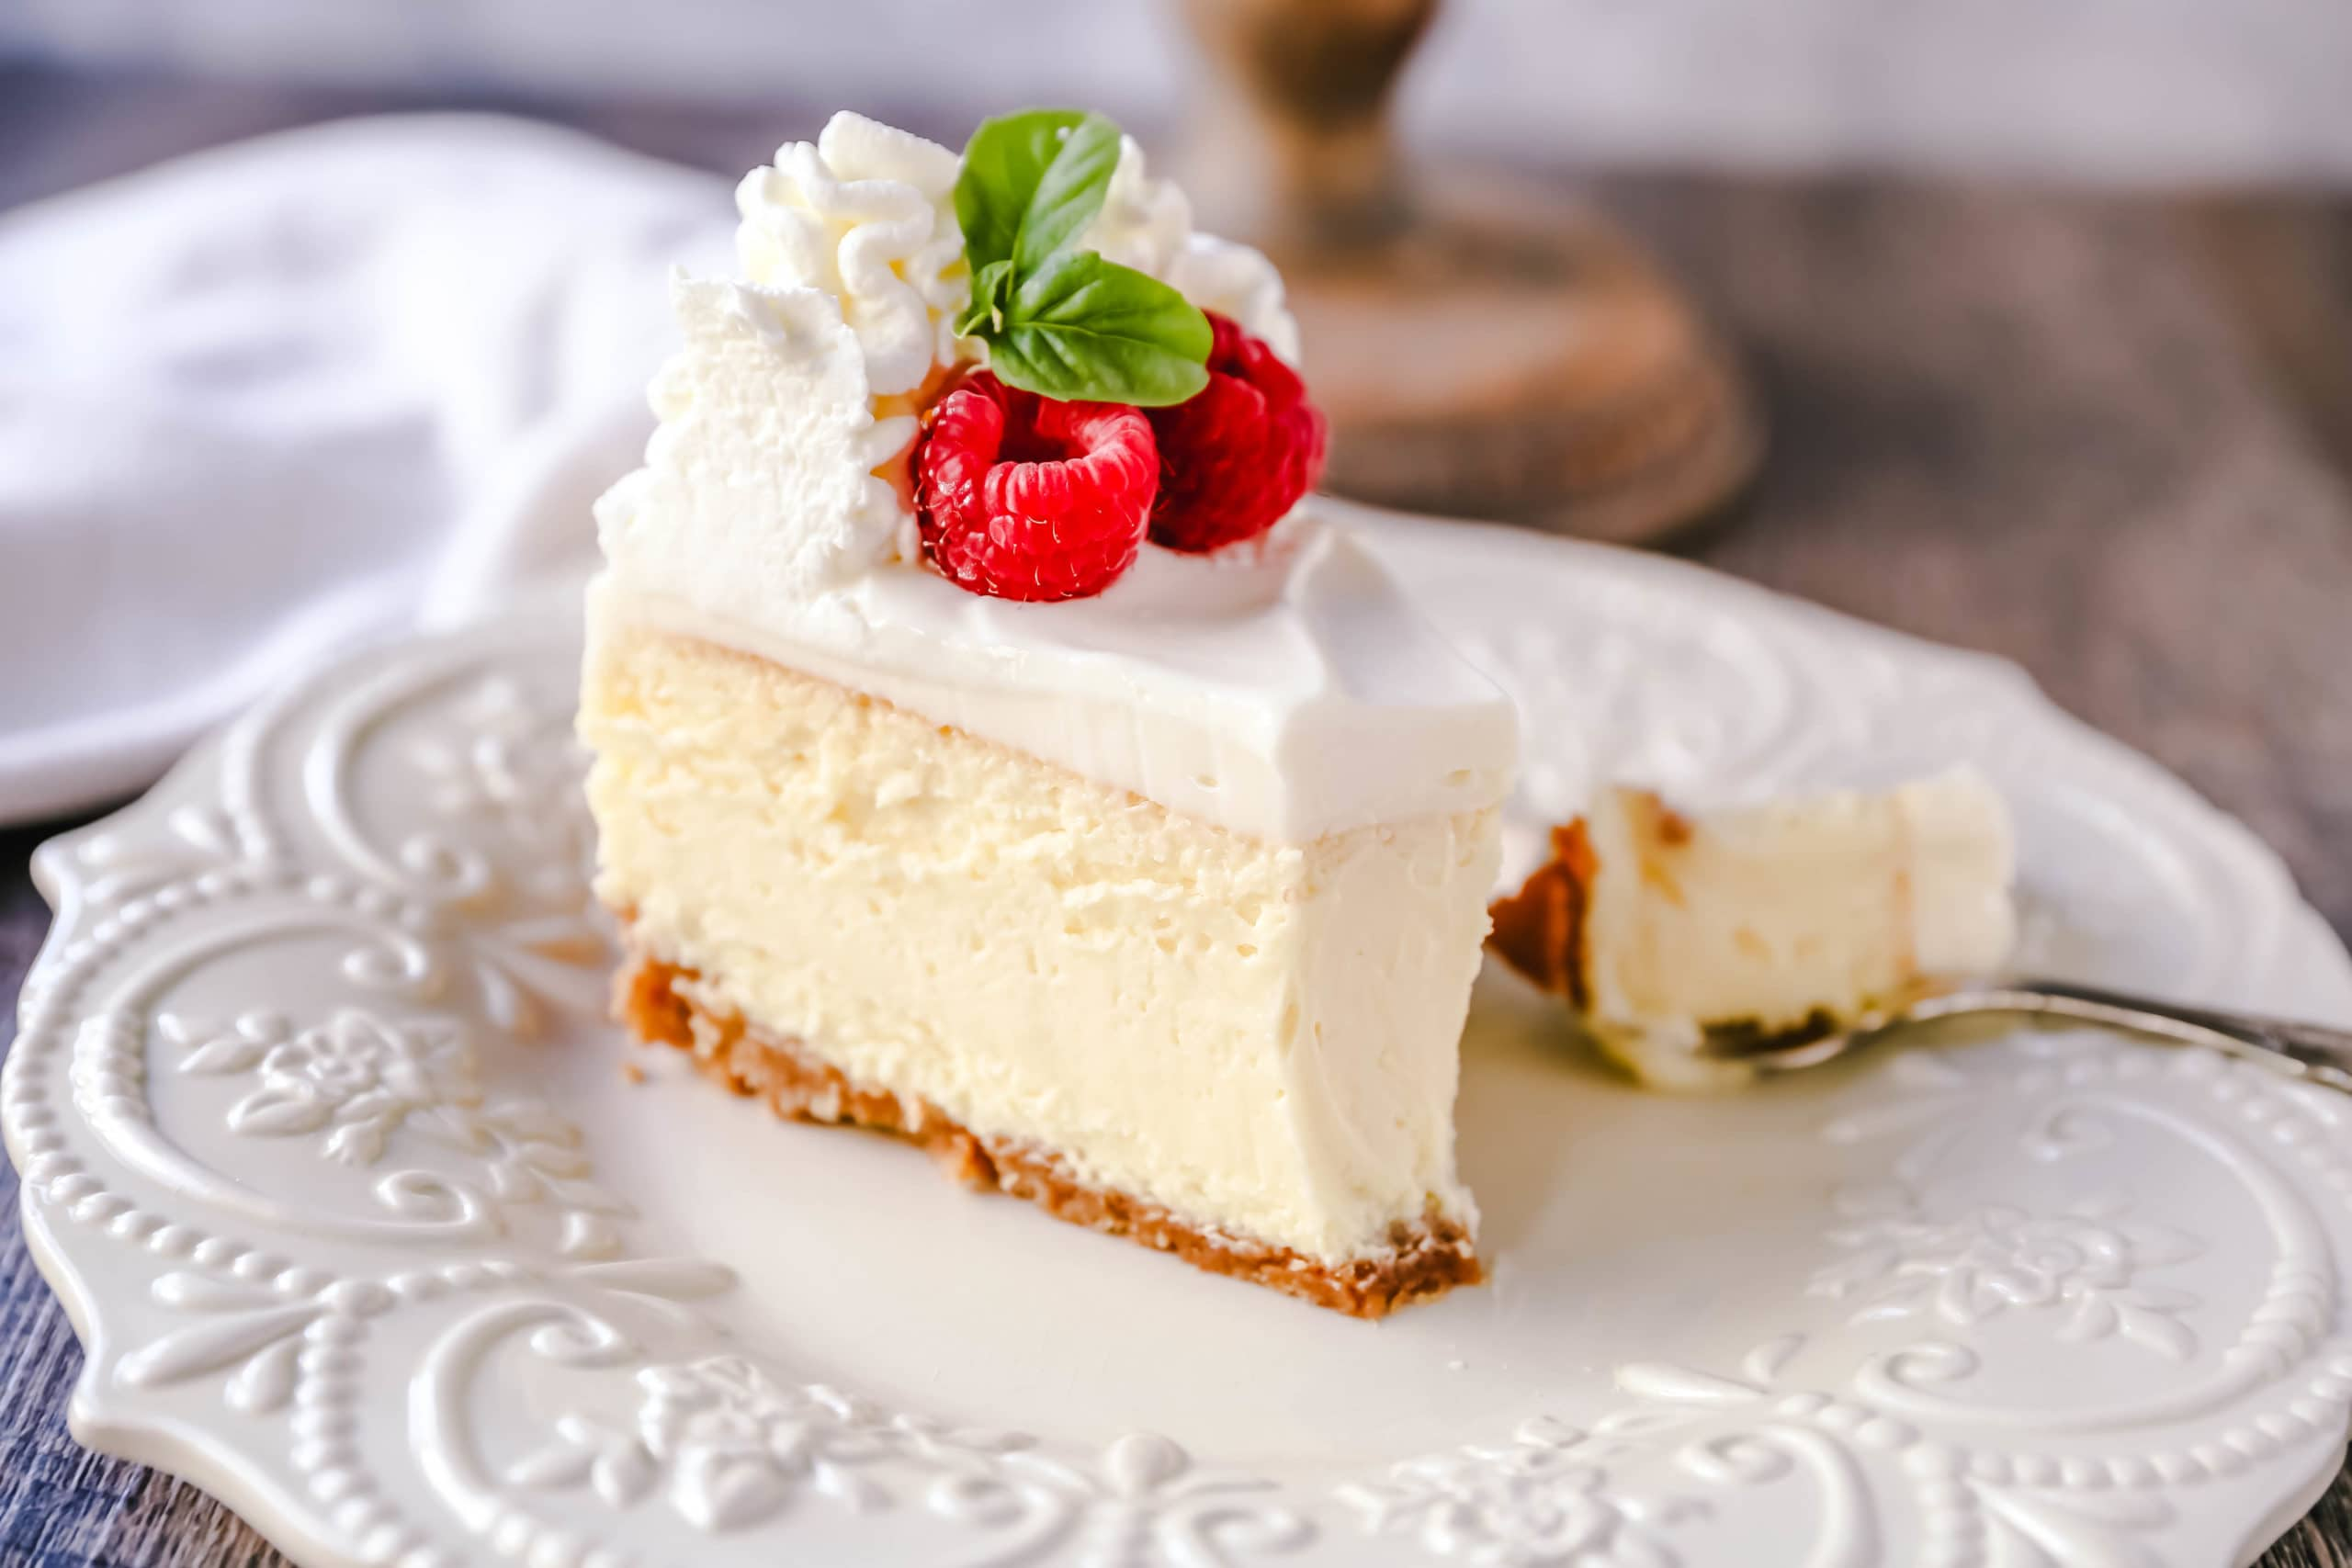 The Best Cheesecake Recipe How to make the creamiest, dreamiest, richest vanilla cheesecake with a buttery graham cracker crust. All of the tips and tricks for making the perfect cheesecake! www.modernhoney.com #cheesecake #vanillacheesecake #cheesecakerecipe #dessert